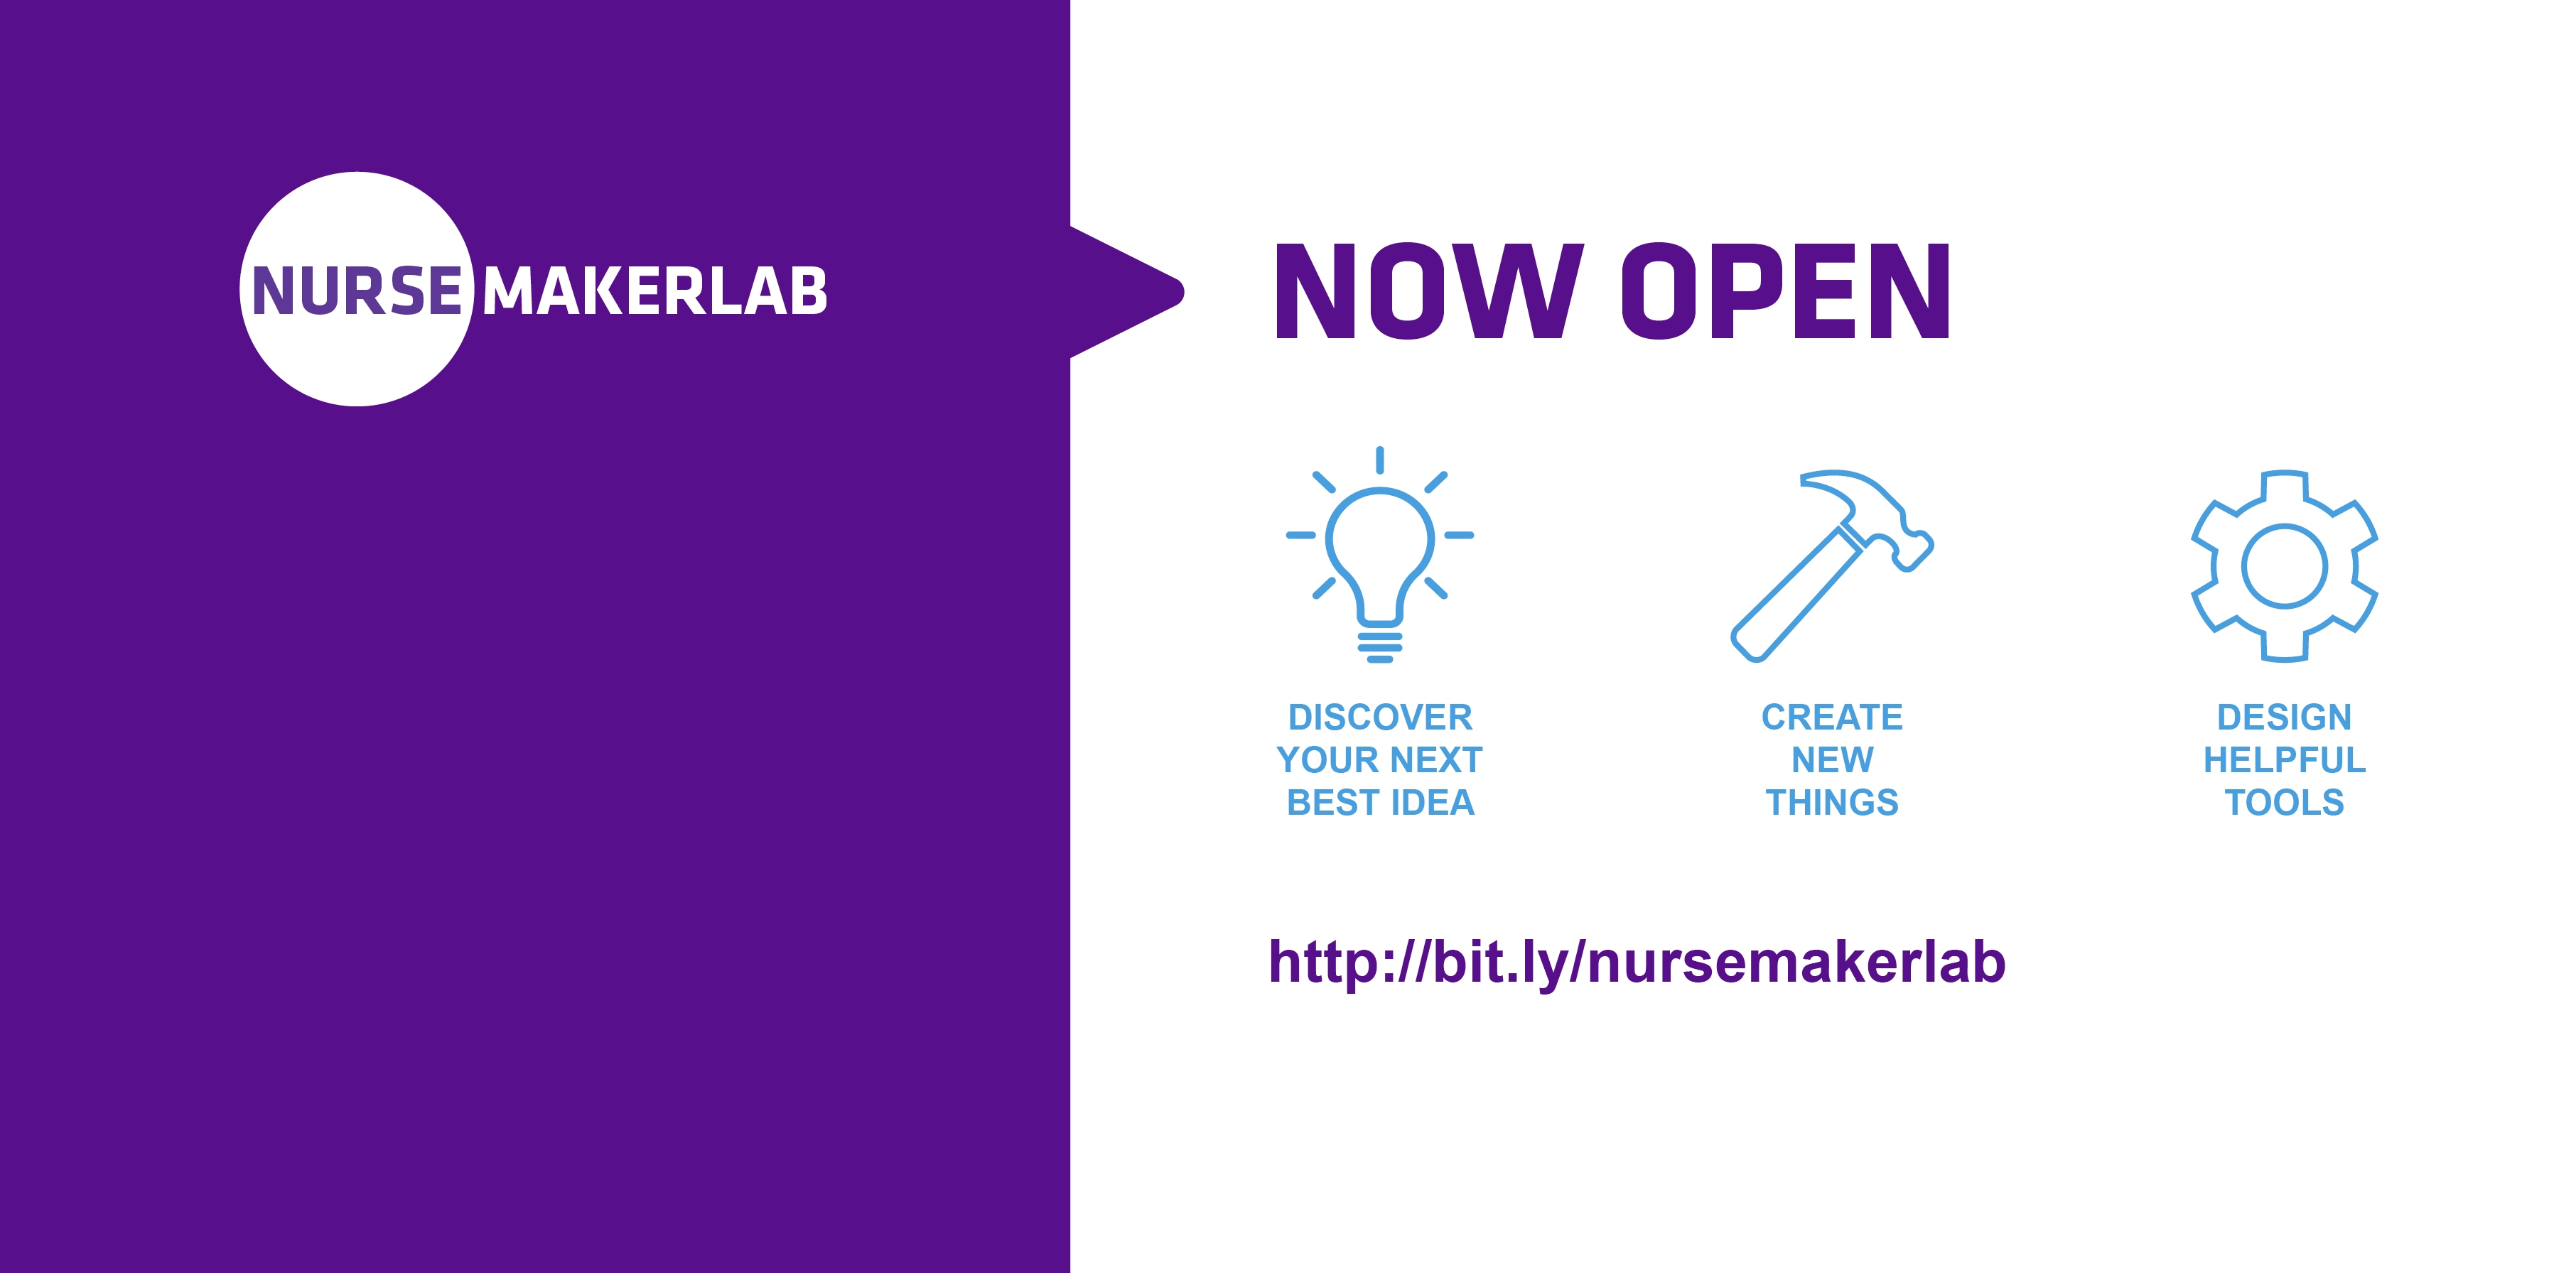 Nurse MakerLab Now Open